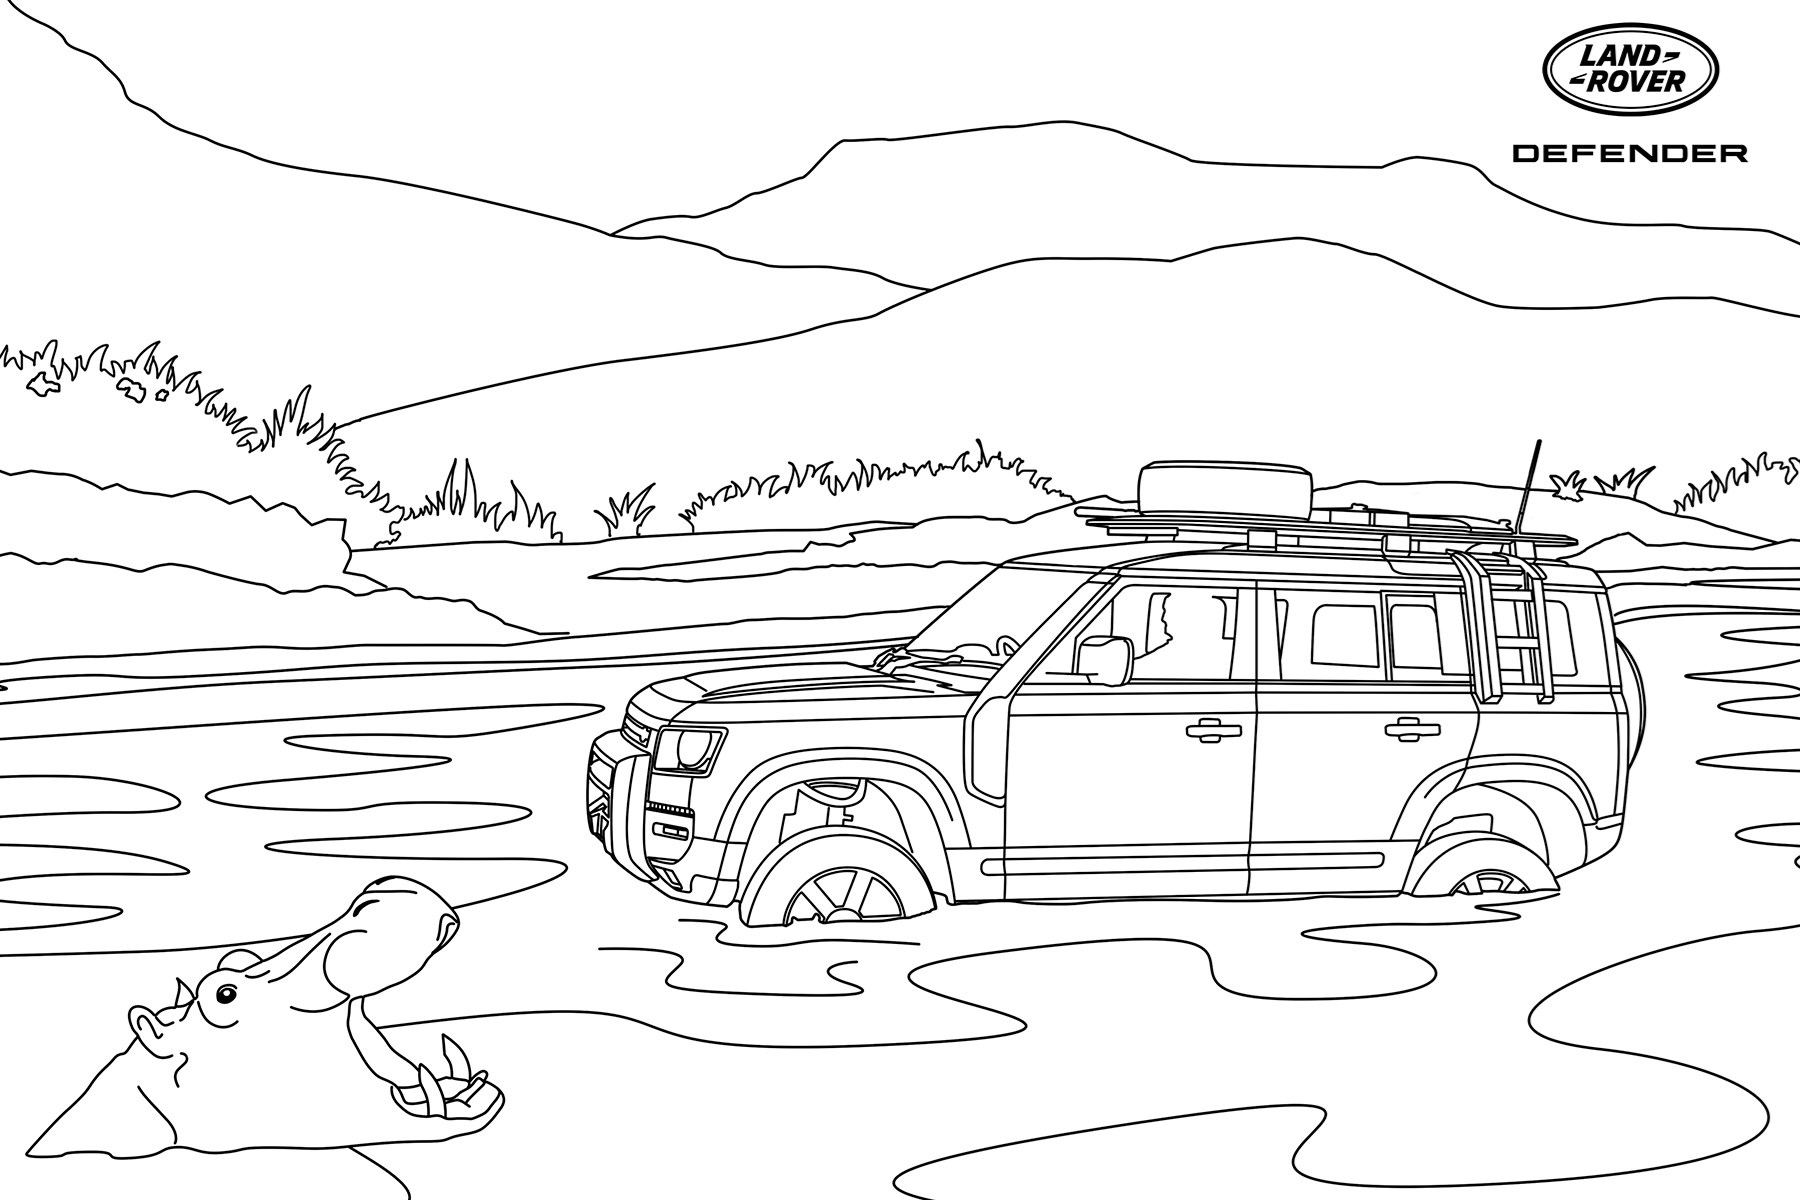 - 50 Shades Of Cray-on: The Best Car Colouring Pages For Kids CAR